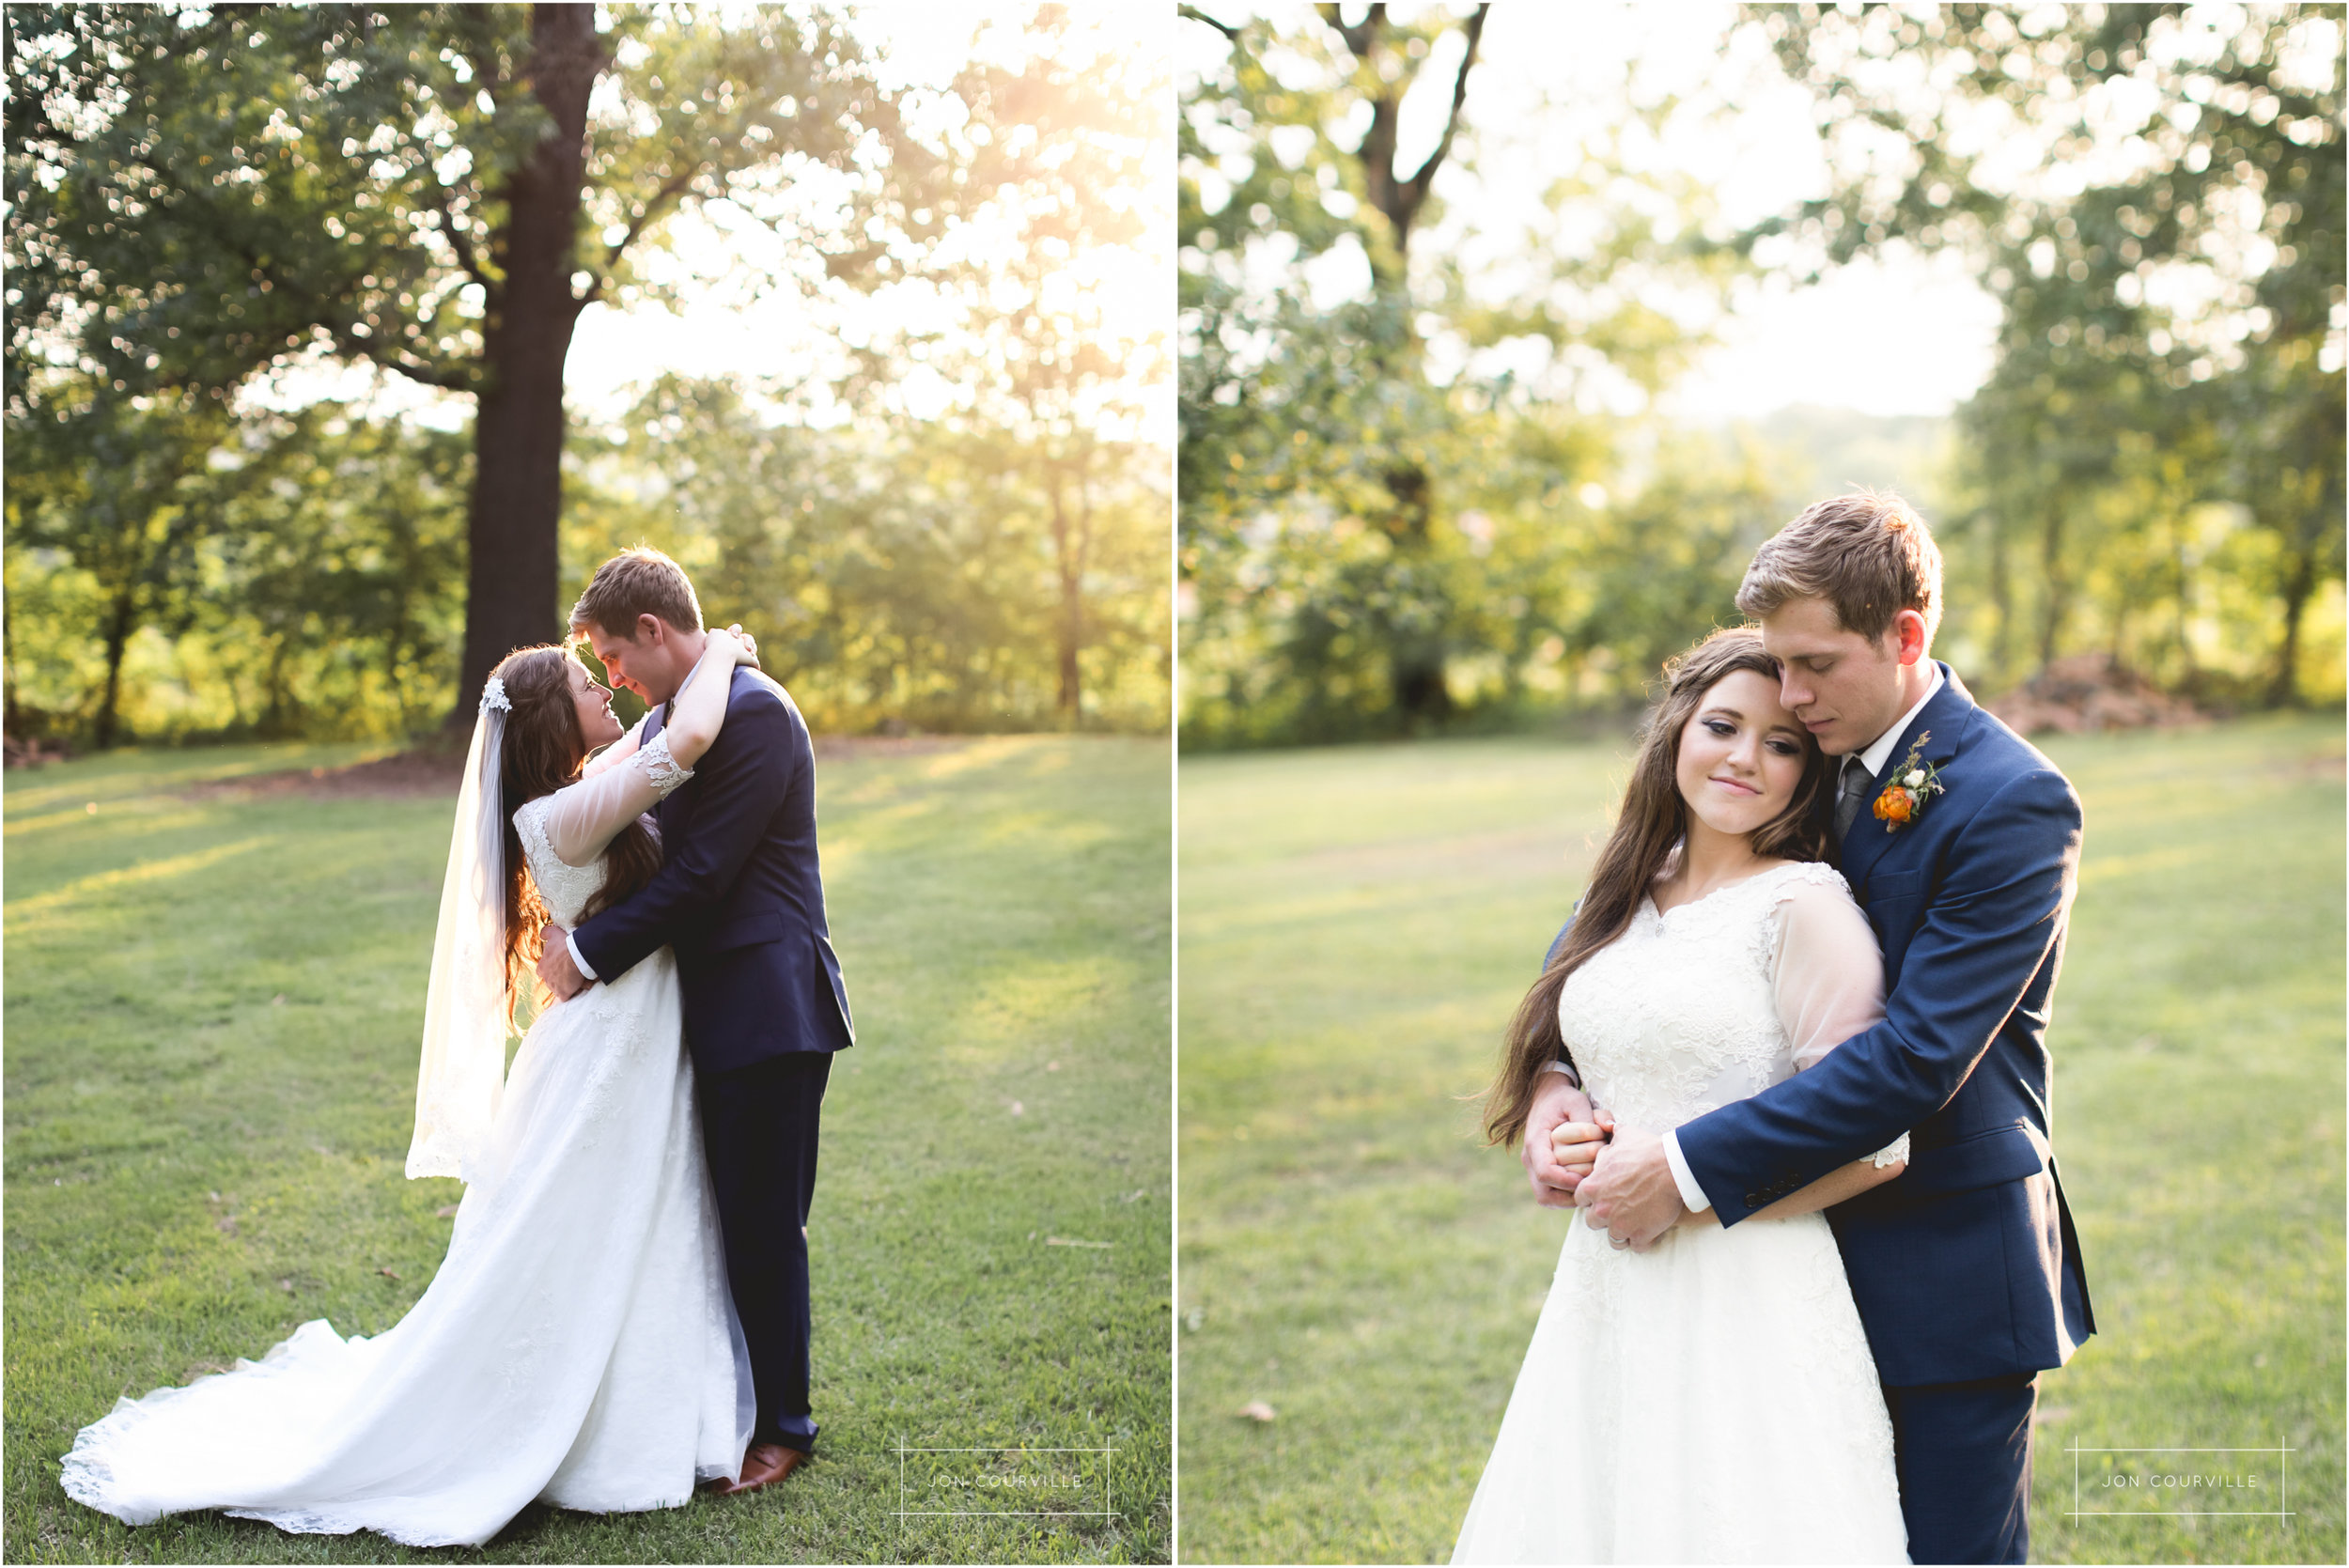 Joy Anna Duggar and Austin Forsyth Wedding